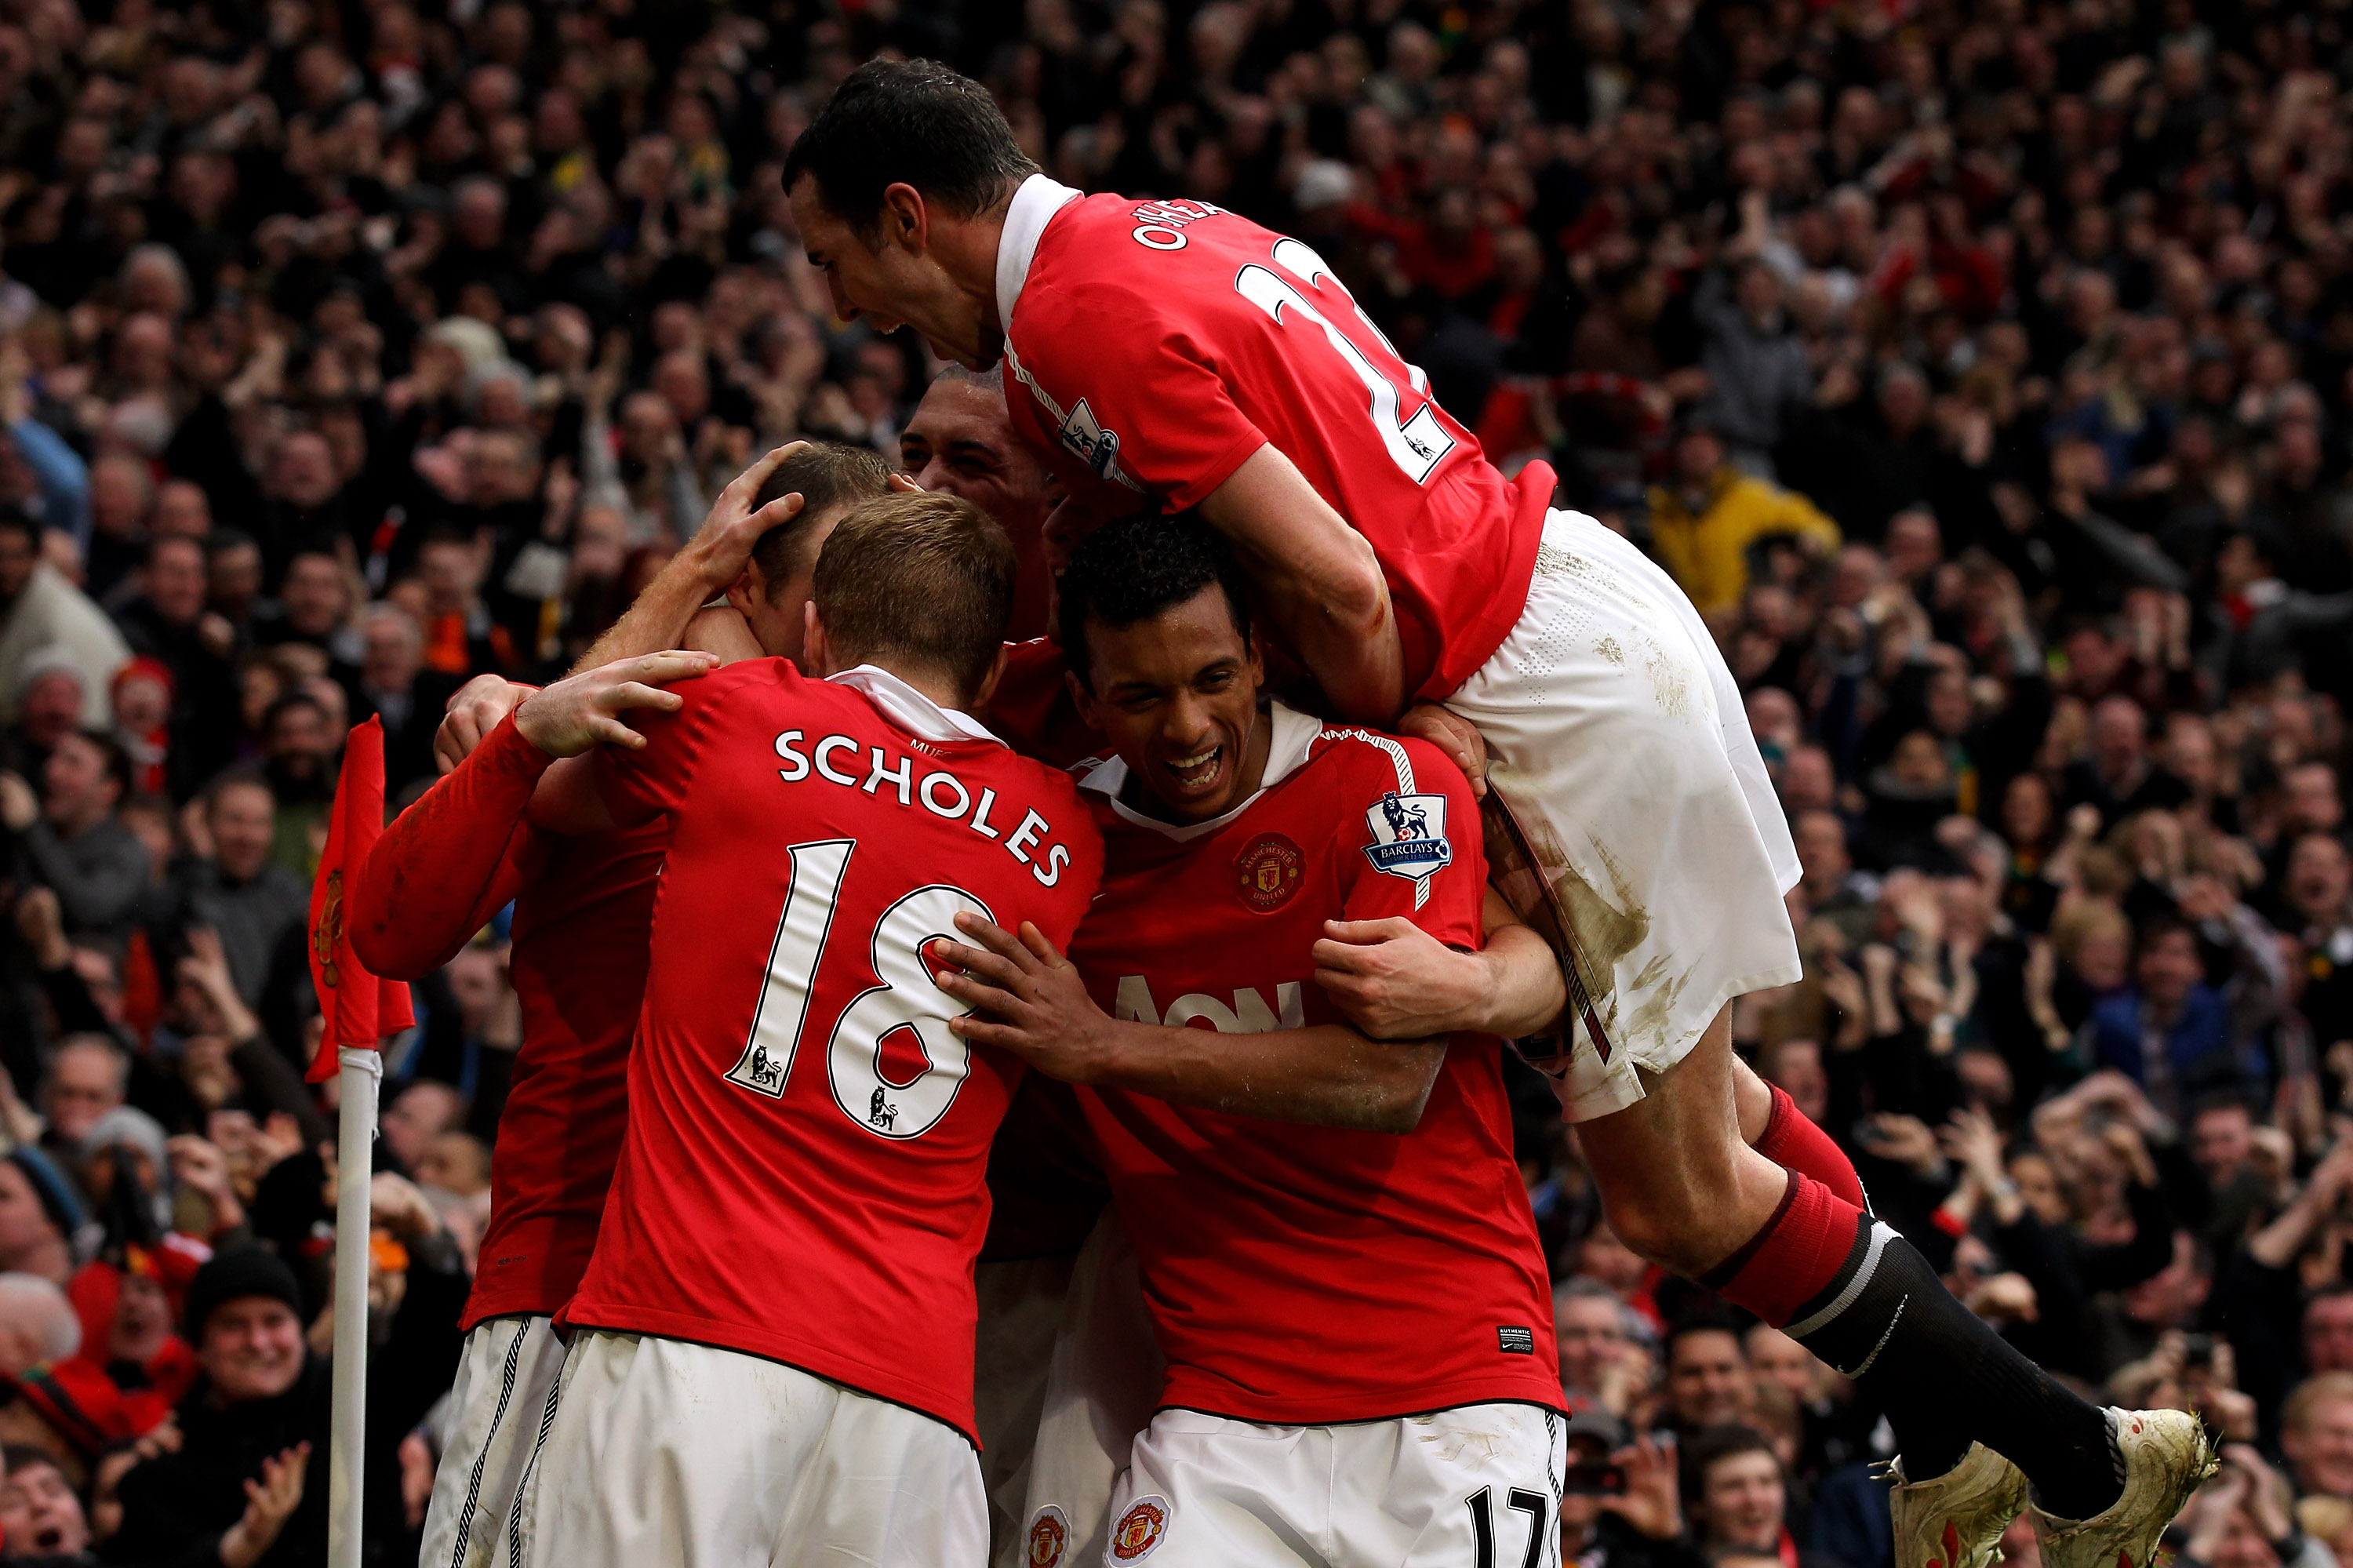 MANCHESTER, ENGLAND - FEBRUARY 12:  Wayne Rooney of Manchester United is mobbed by teammates after scoring during the Barclays Premier League match between Manchester United and Manchester City at Old Trafford on February 12, 2011 in Manchester, England.